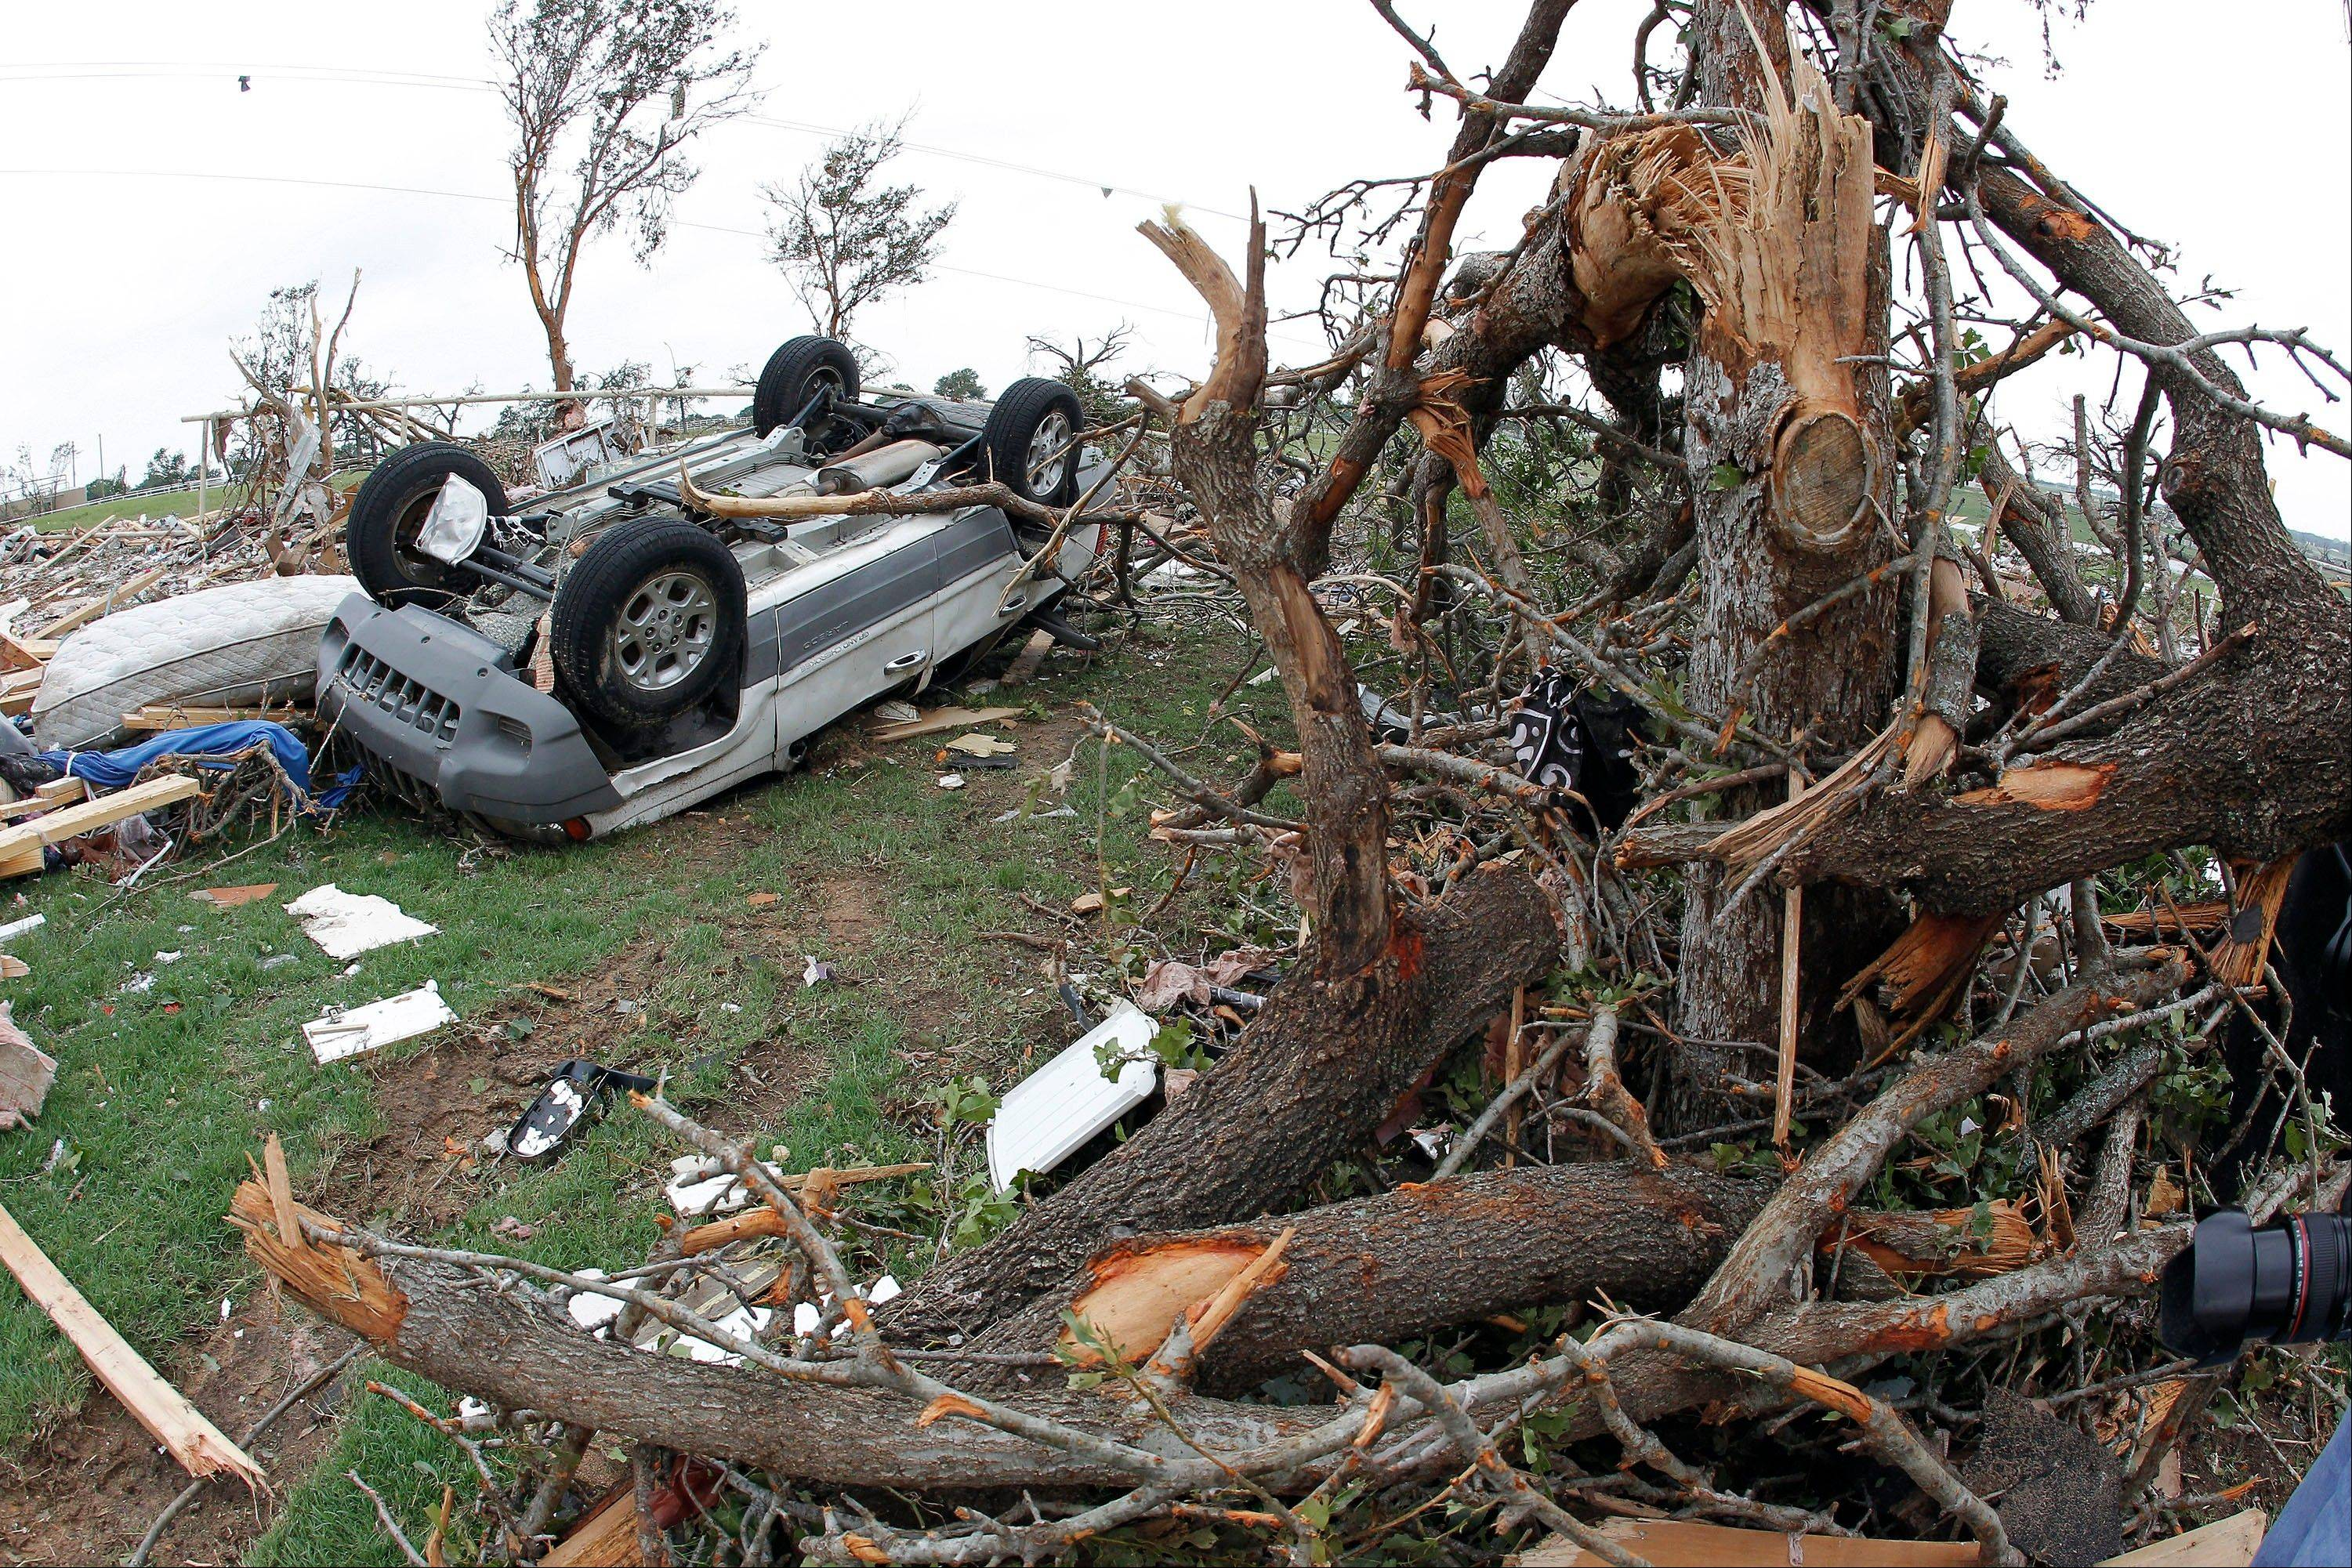 A toppled car lies next to and crushed trees in the Rancho Brazos neighborhood of Granbury, Texas on Thursday, May 16, 2013. Ten tornadoes touched down in several small communities in North Texas overnight, leaving at least six people dead, dozens injured and hundreds homeless. Emergency responders were still searching for missing people Thursday afternoon.